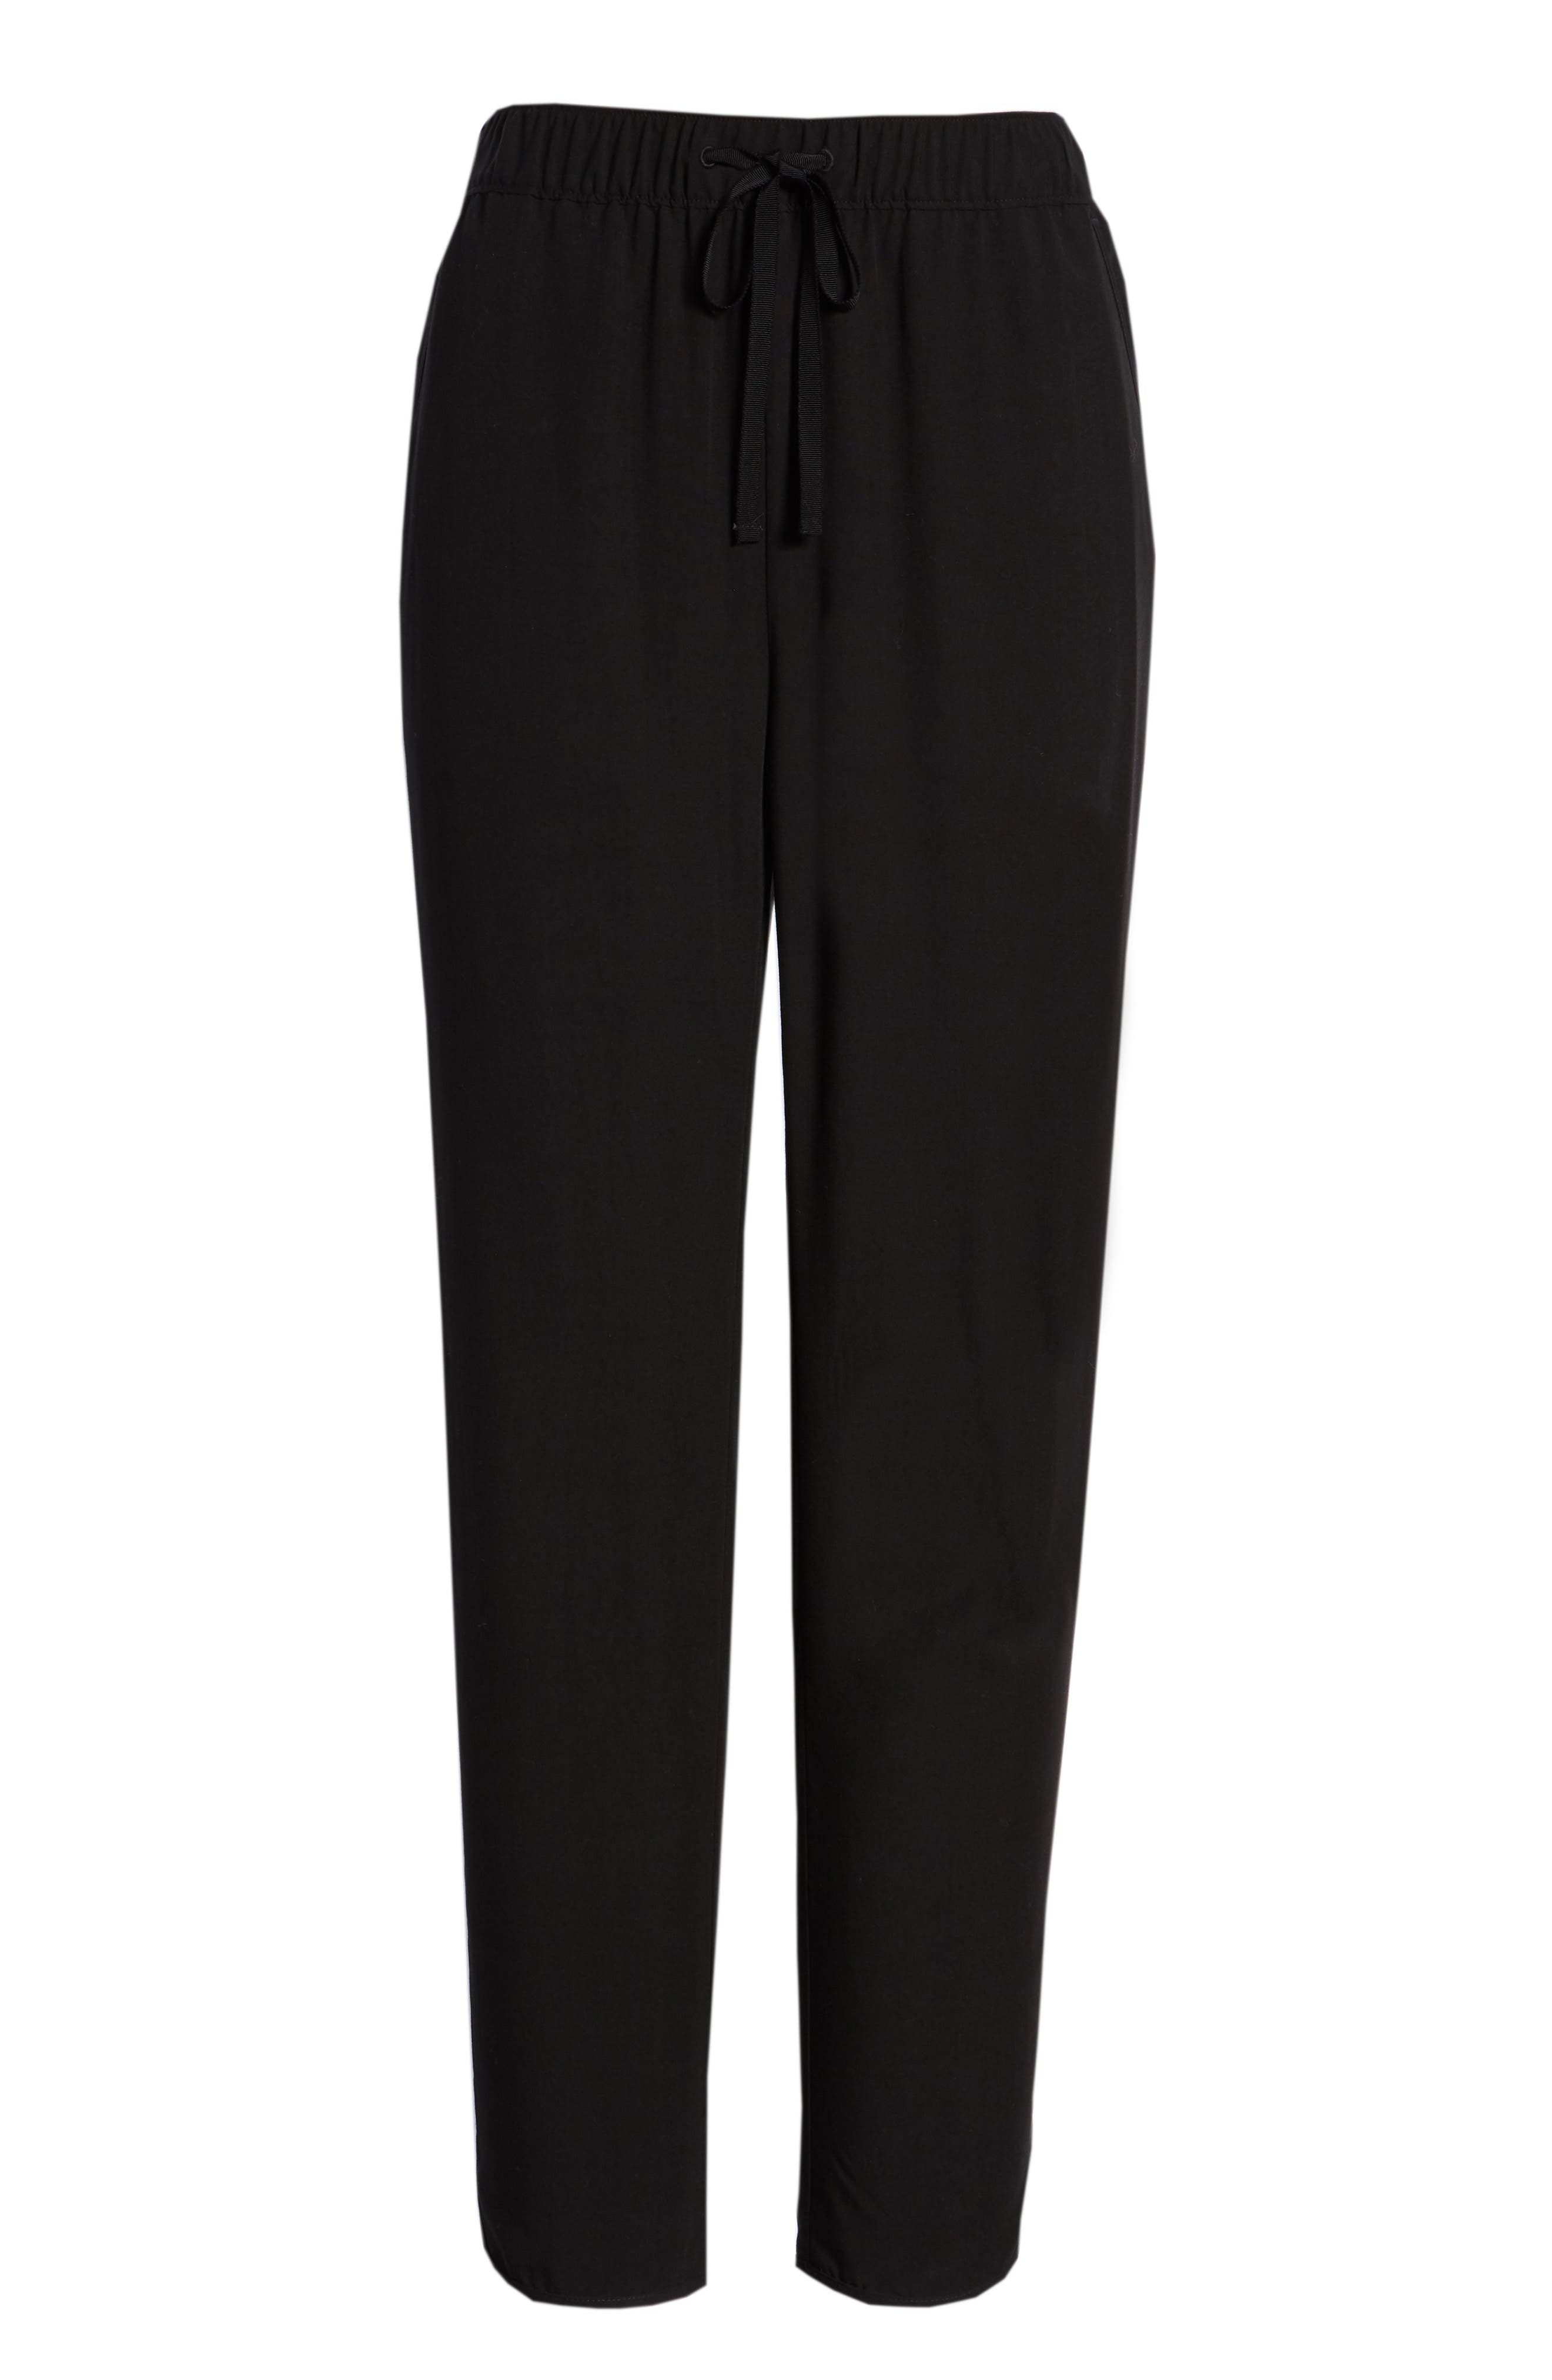 MADEWELL,                             Drawstring Track Trousers,                             Alternate thumbnail 6, color,                             001